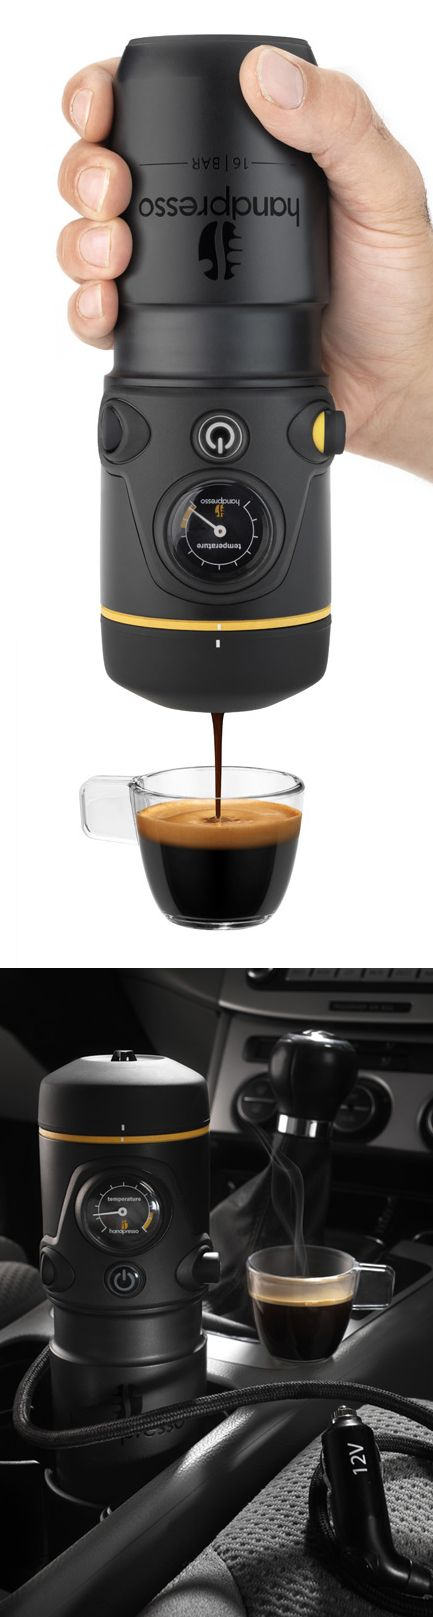 Contact Espresso Outlet for best price. Portable Coffee Maker // simply plug the Handpresso into your car and have fresh brewed espresso on the go within minutes. Buy at www.espressooutlet.net  Similar to the new Minipresso - the Handpresso Auto and the Handpresso Wild are the original portable espresso machines